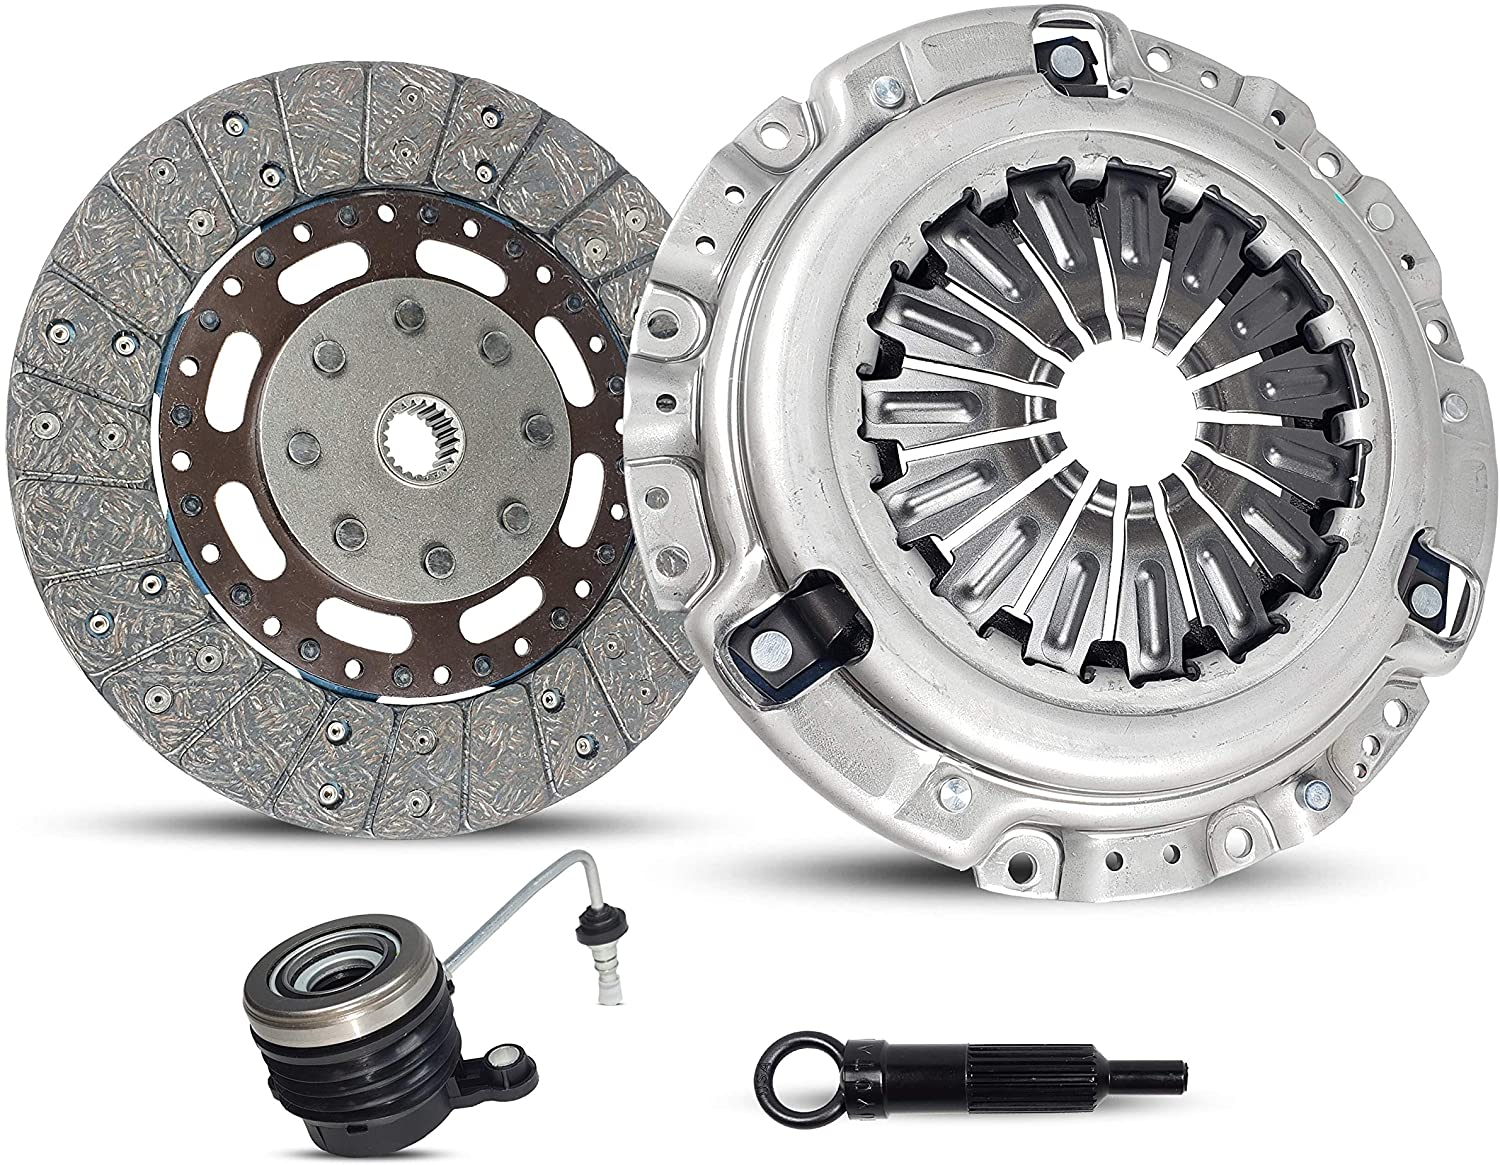 Clutch Kit Compatible With Sentra Altima Base S Sle Se-R Spec V Sl Sedan 4-Door Coupe 2-Door 2007-2012 2.5L l4 GAS DOHC Naturally Aspirated (06-078S)